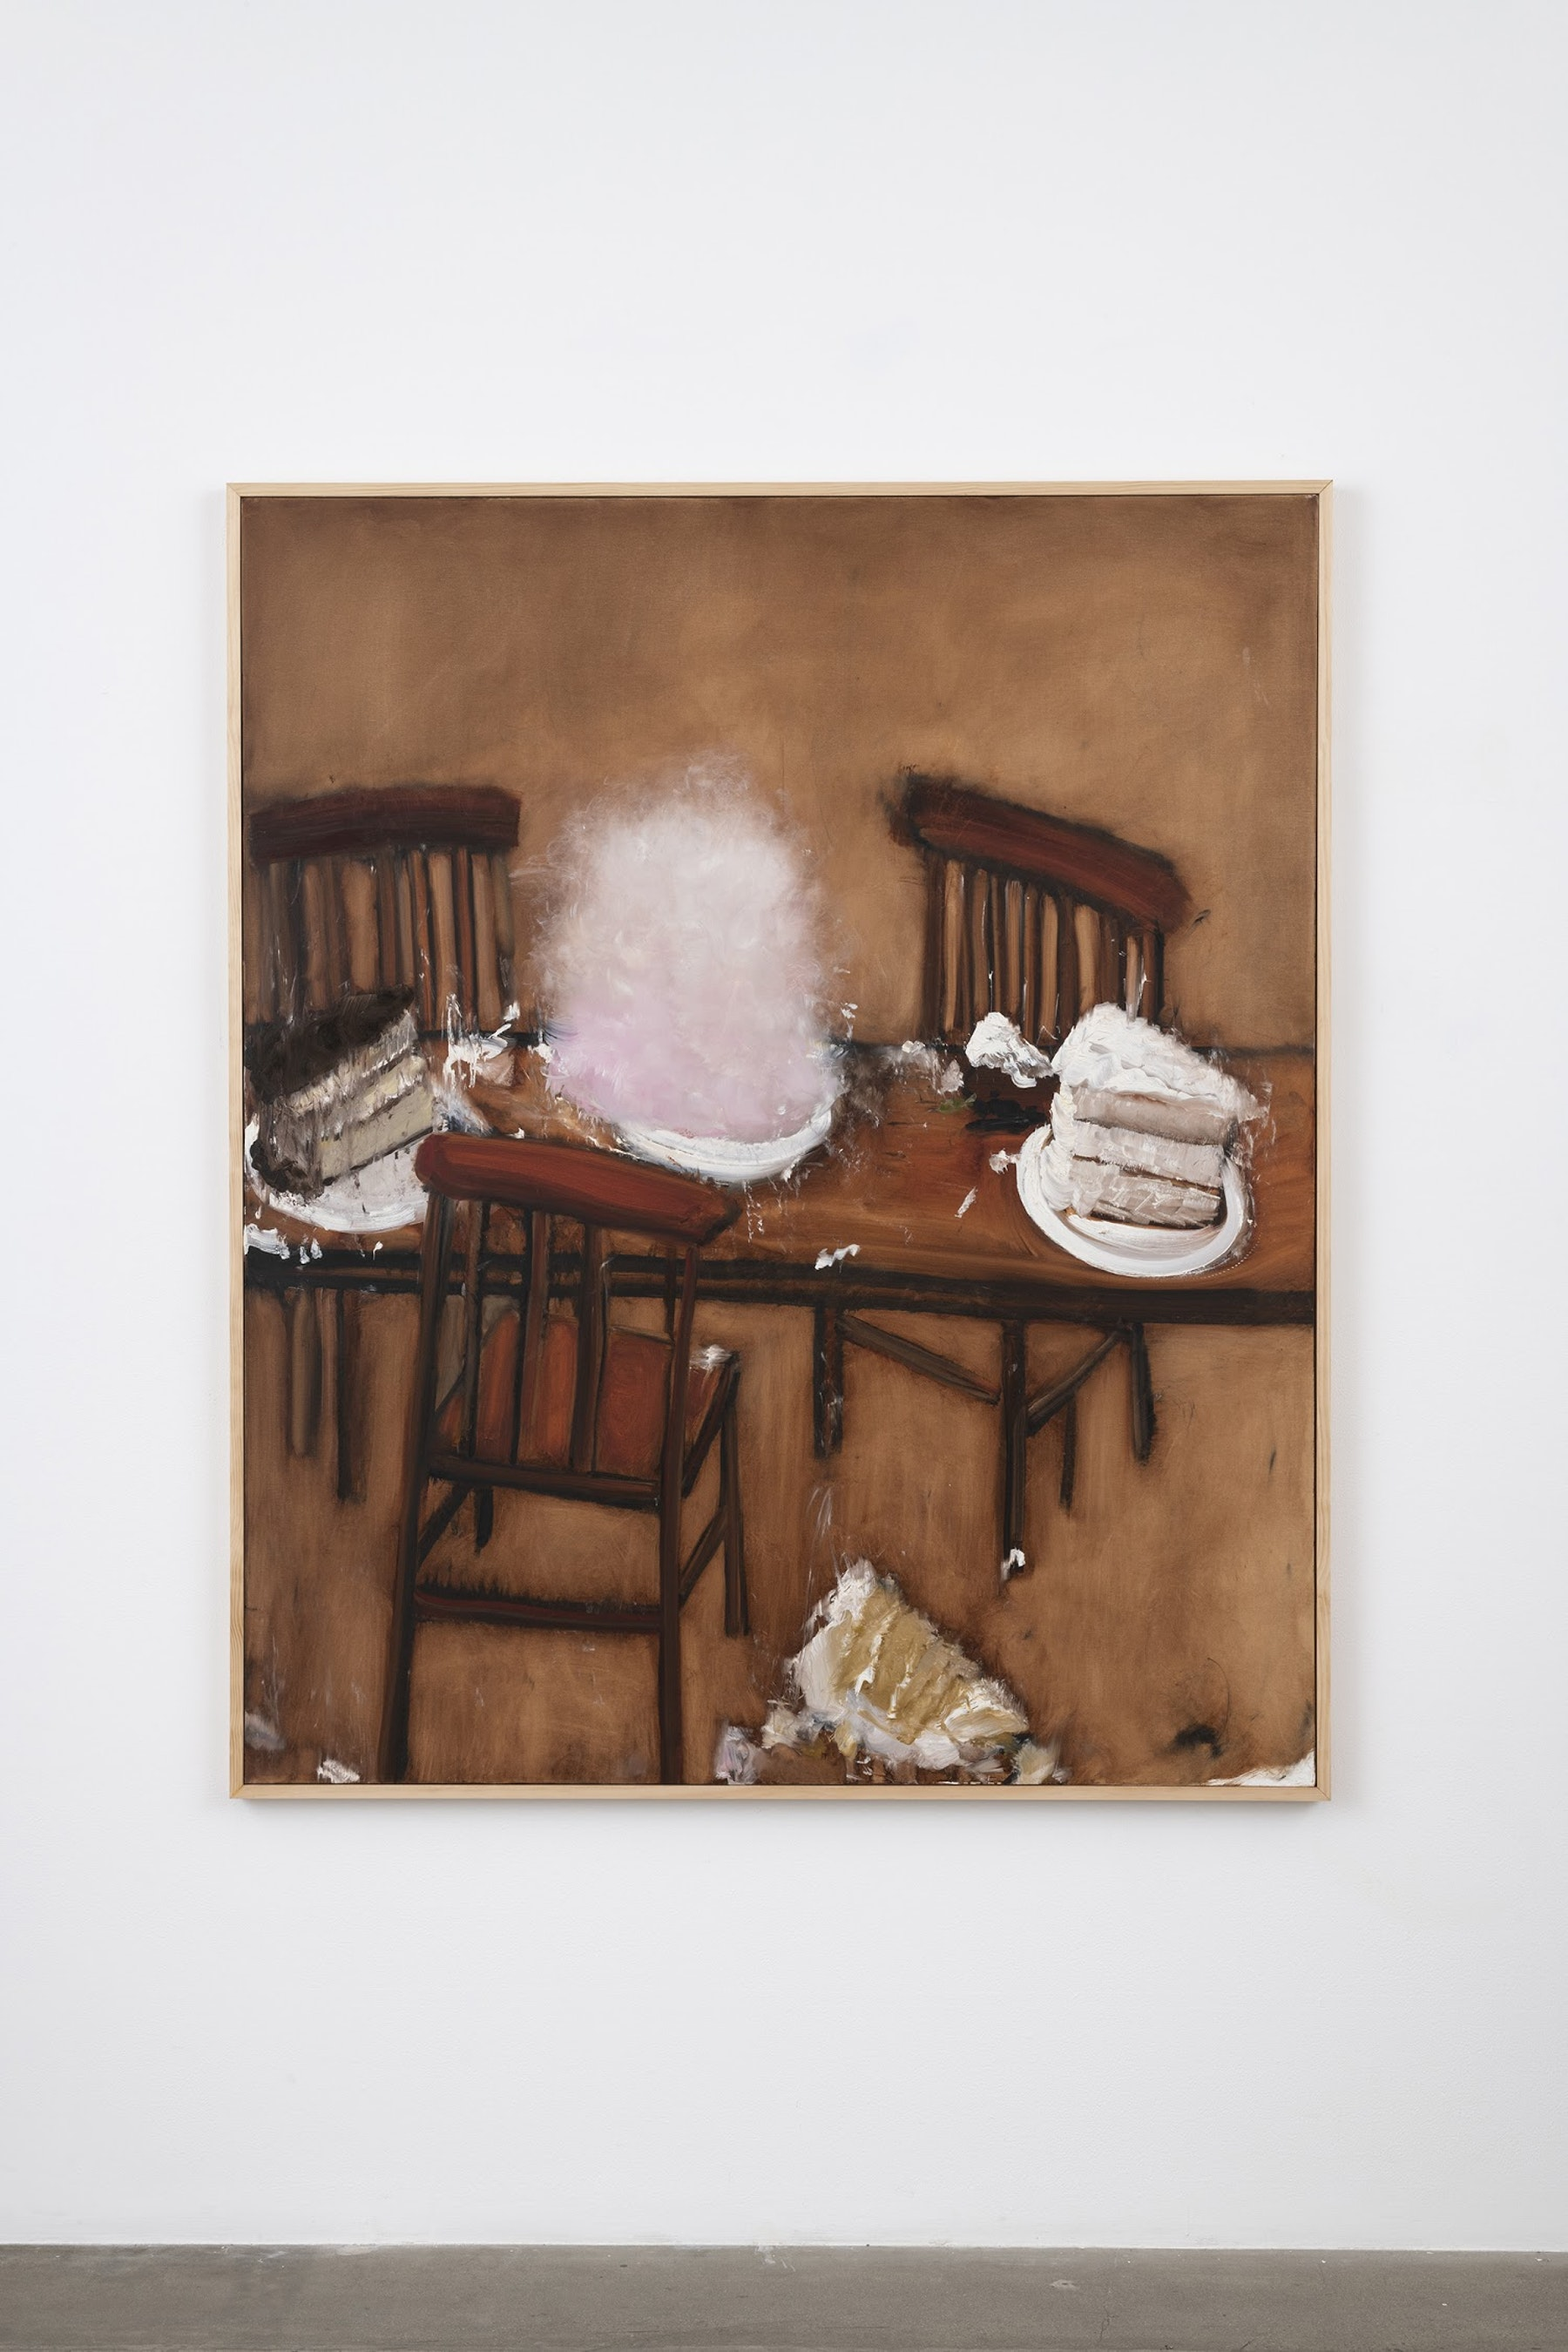 "Kim Dingle ""Cotton Candy,"" 2007 Oil on canvas 73.5 x 61.5 x 1.5"" [HxWxD] (186.69 x 156.21 x 3.81 cm) Inventory #DIN256 Courtesy of the artist and Vielmetter Los Angeles Photo credit: Jeff McLane"